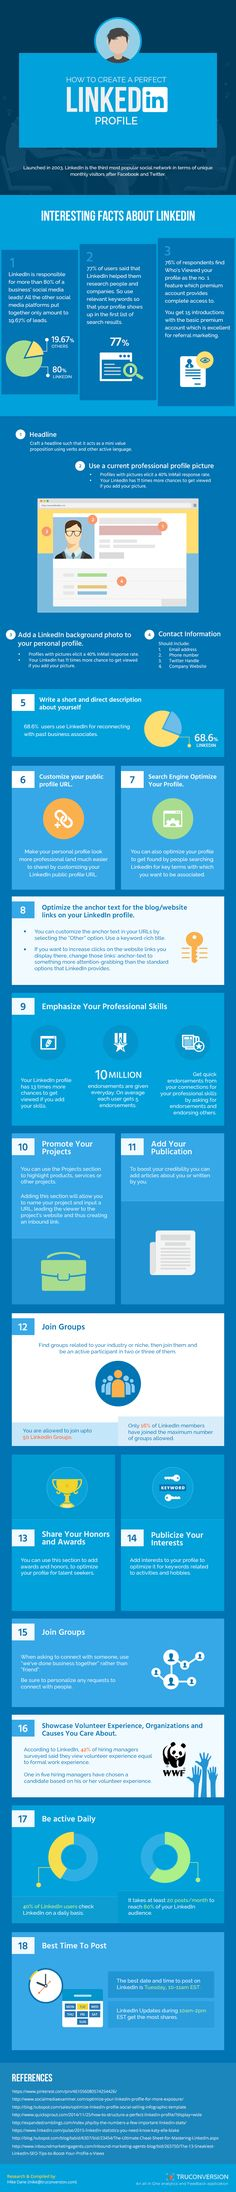 10 Steps for Creating an Effective LinkedIn Profile